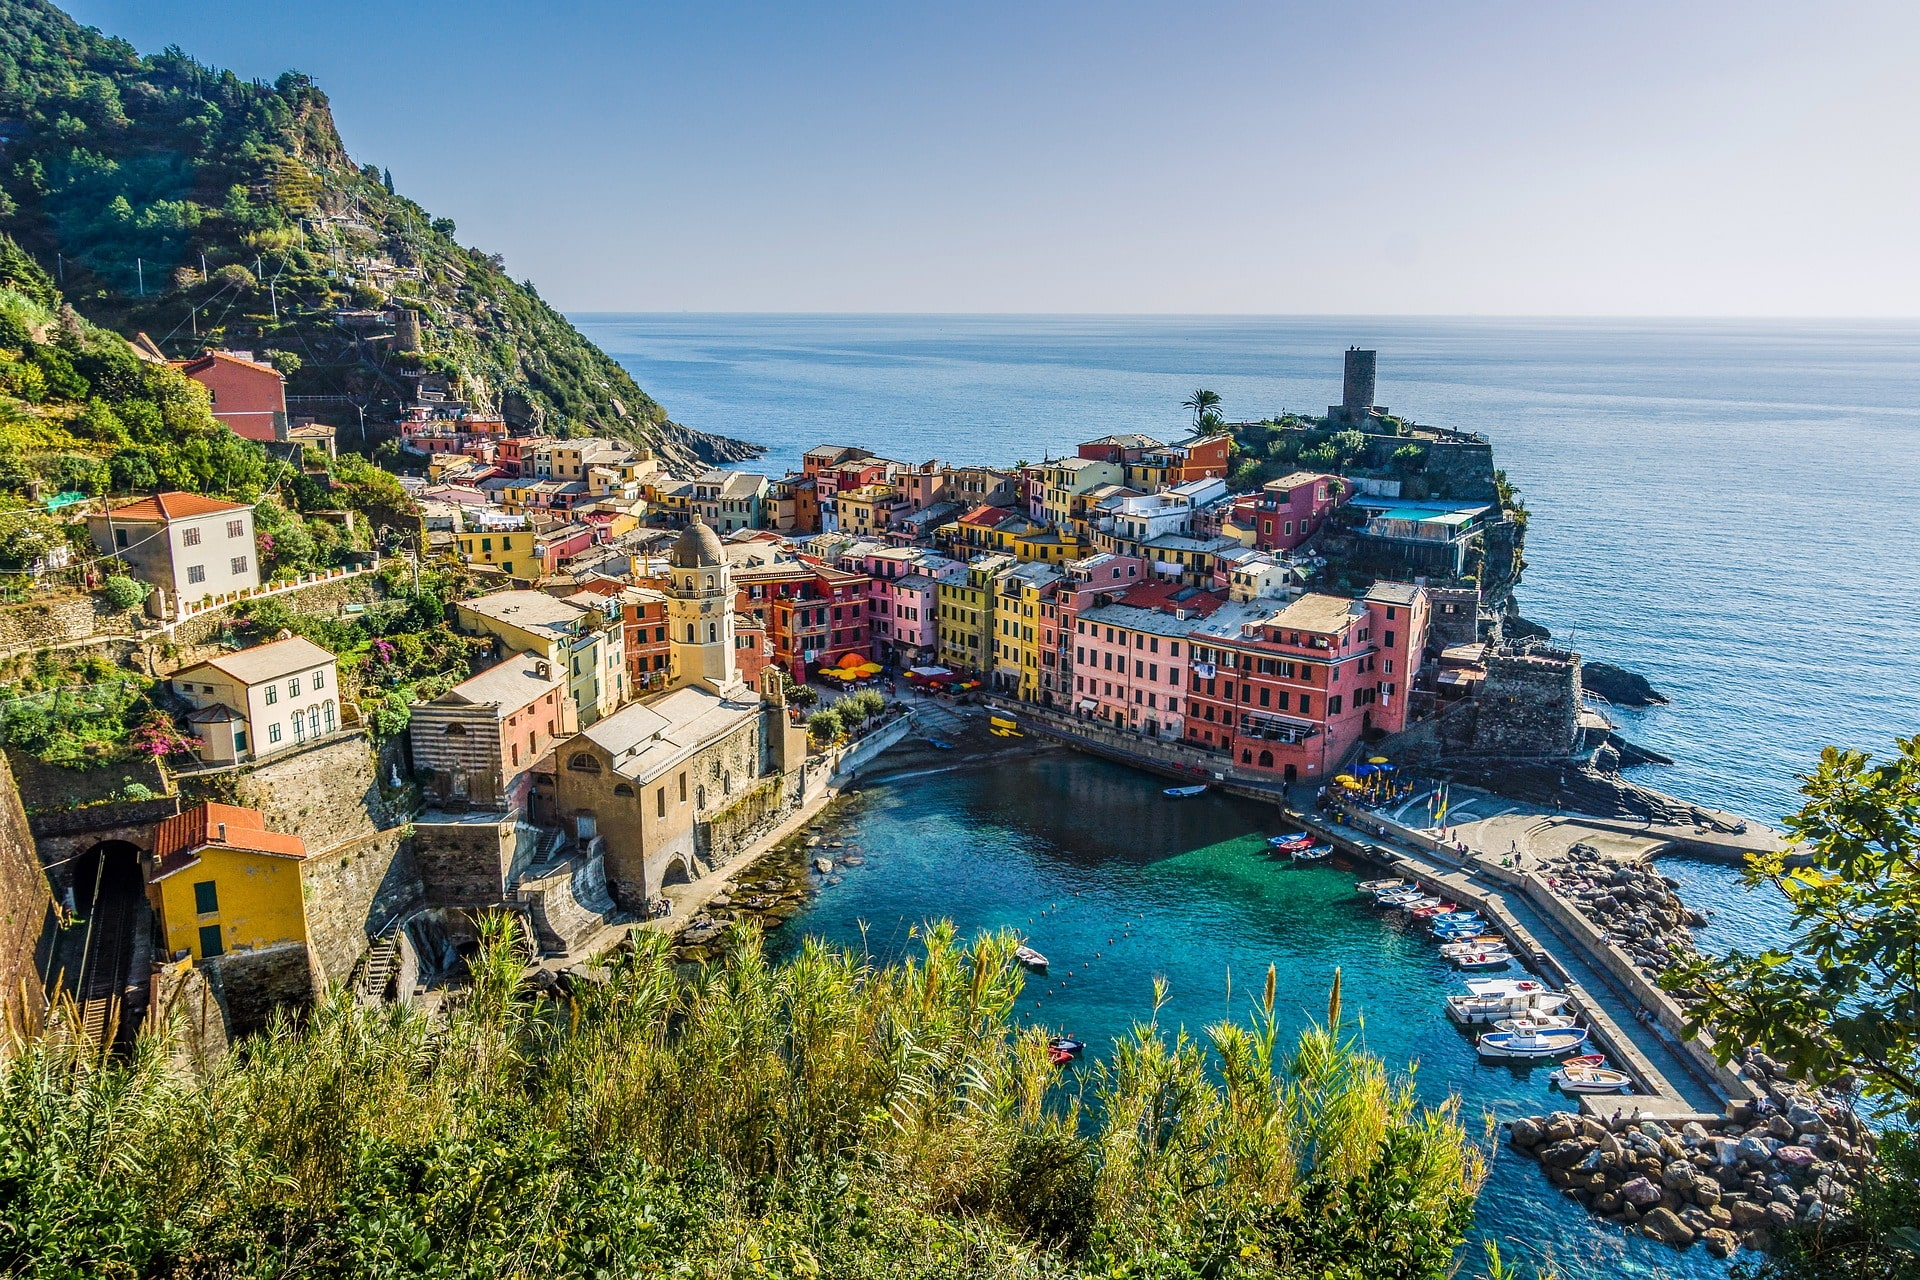 Gorgeous Cinque Terre is where to stay in Italy if you're looking for lovely nature